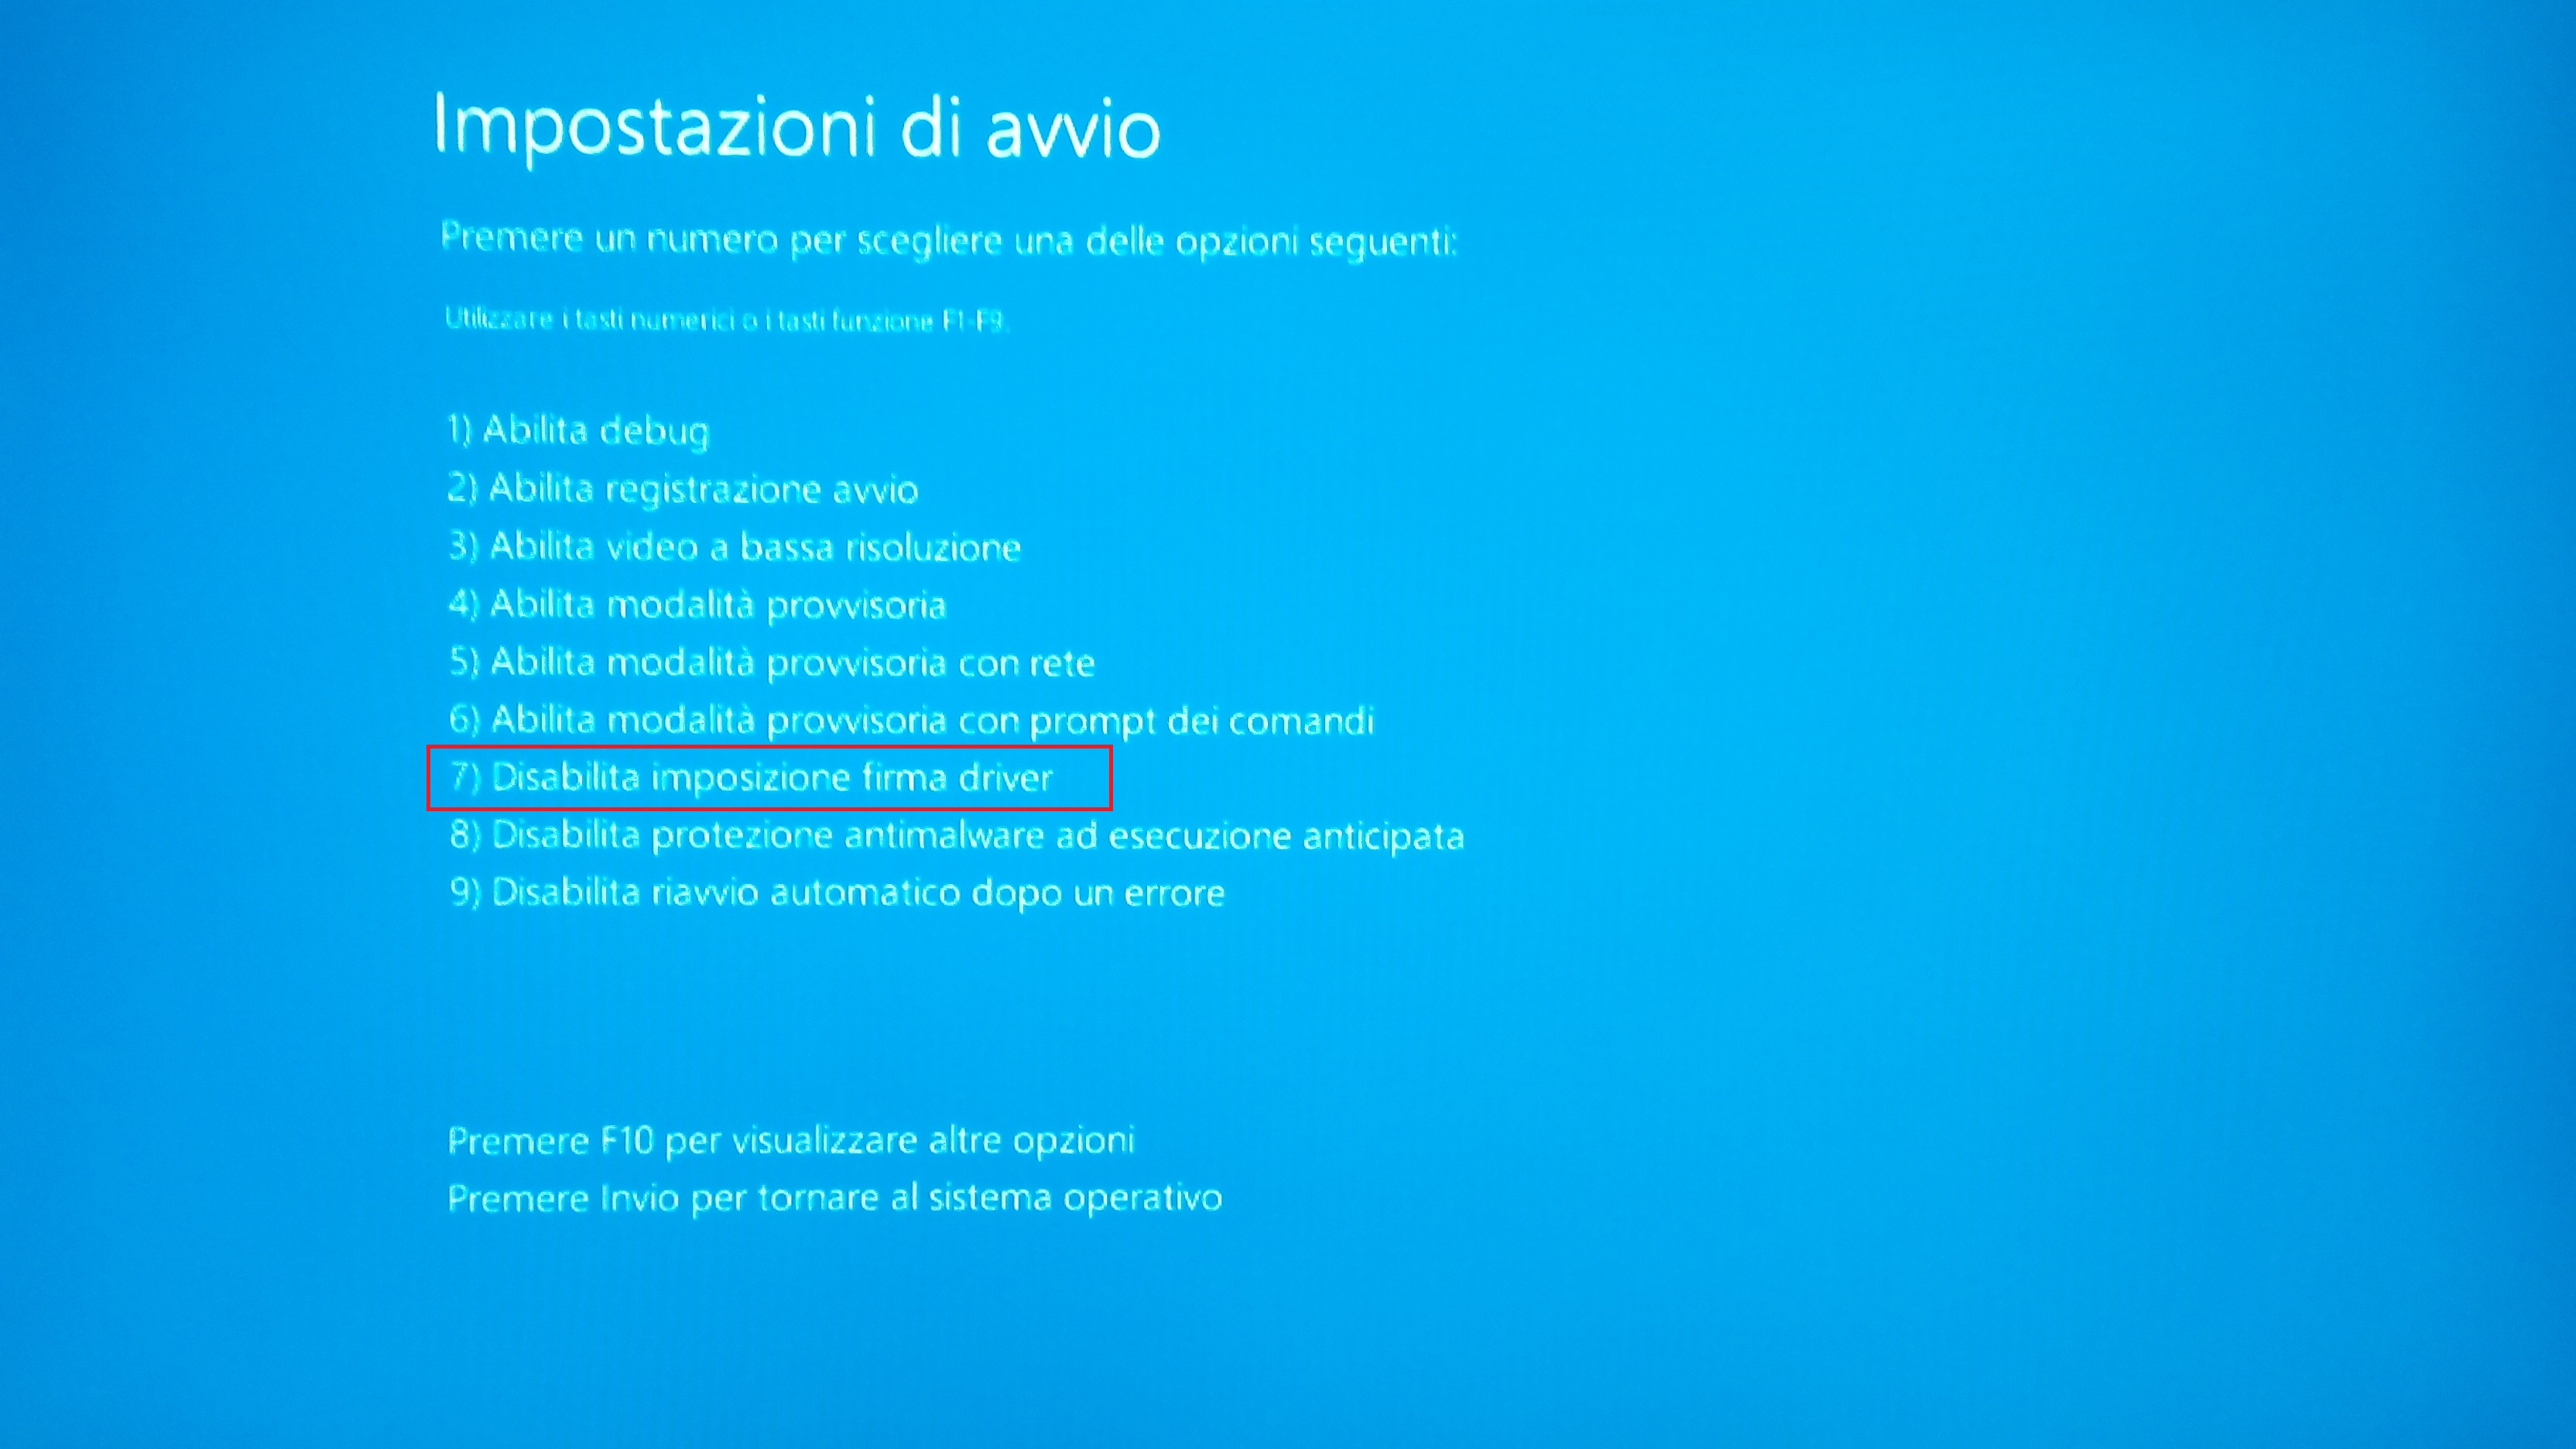 Windows 8.1 - Avvio driver - fonte desktopsolution.org